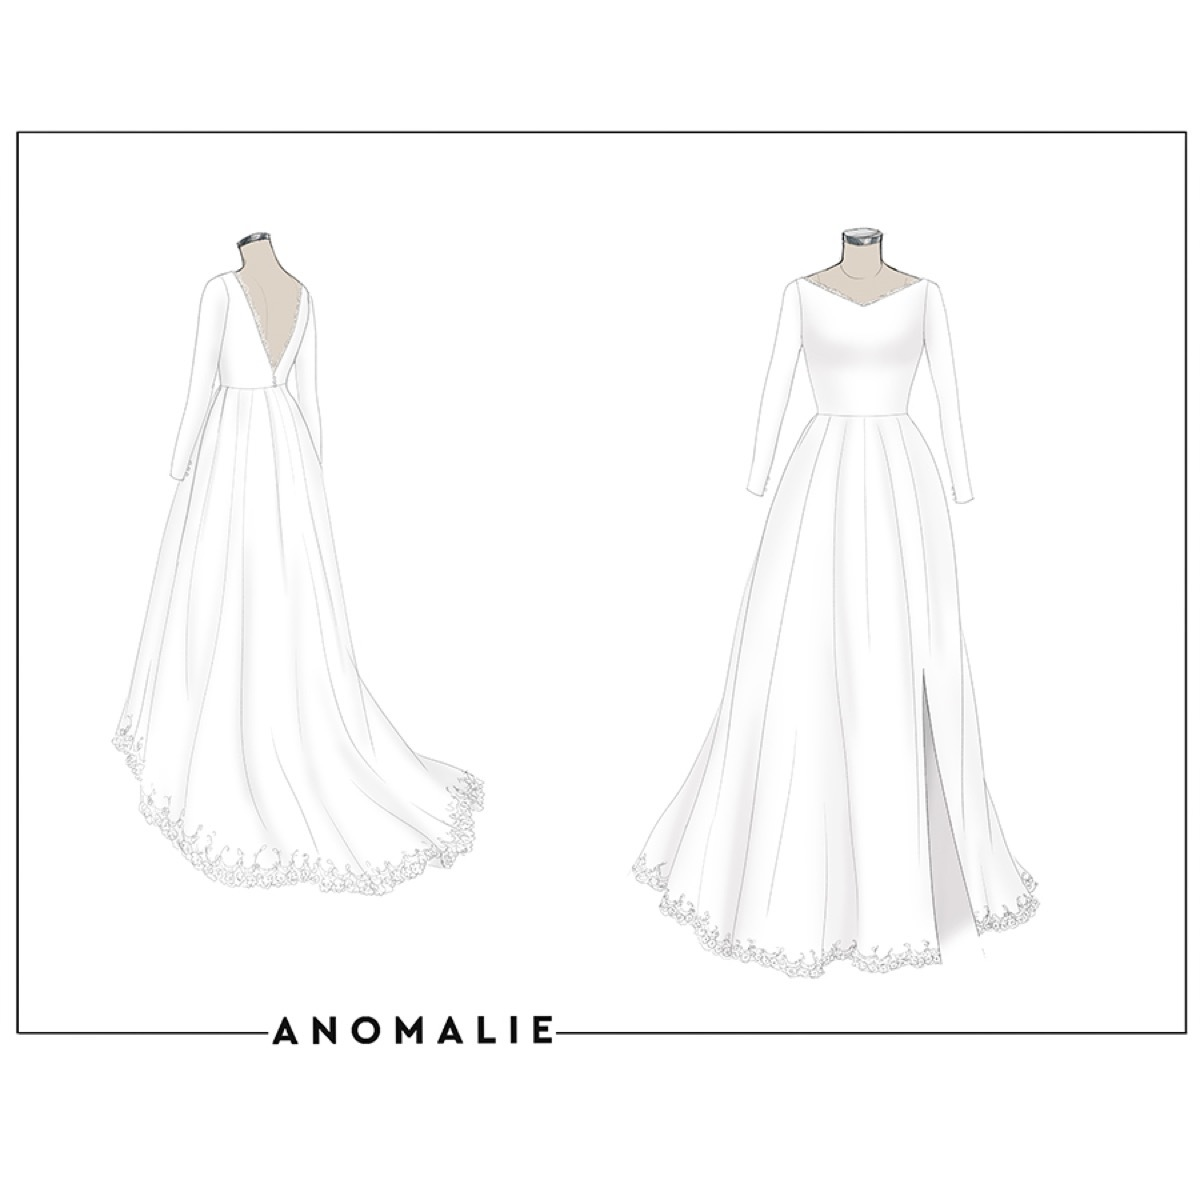 Anomalie custom soft white silk georgette wedding dress with long sleeves